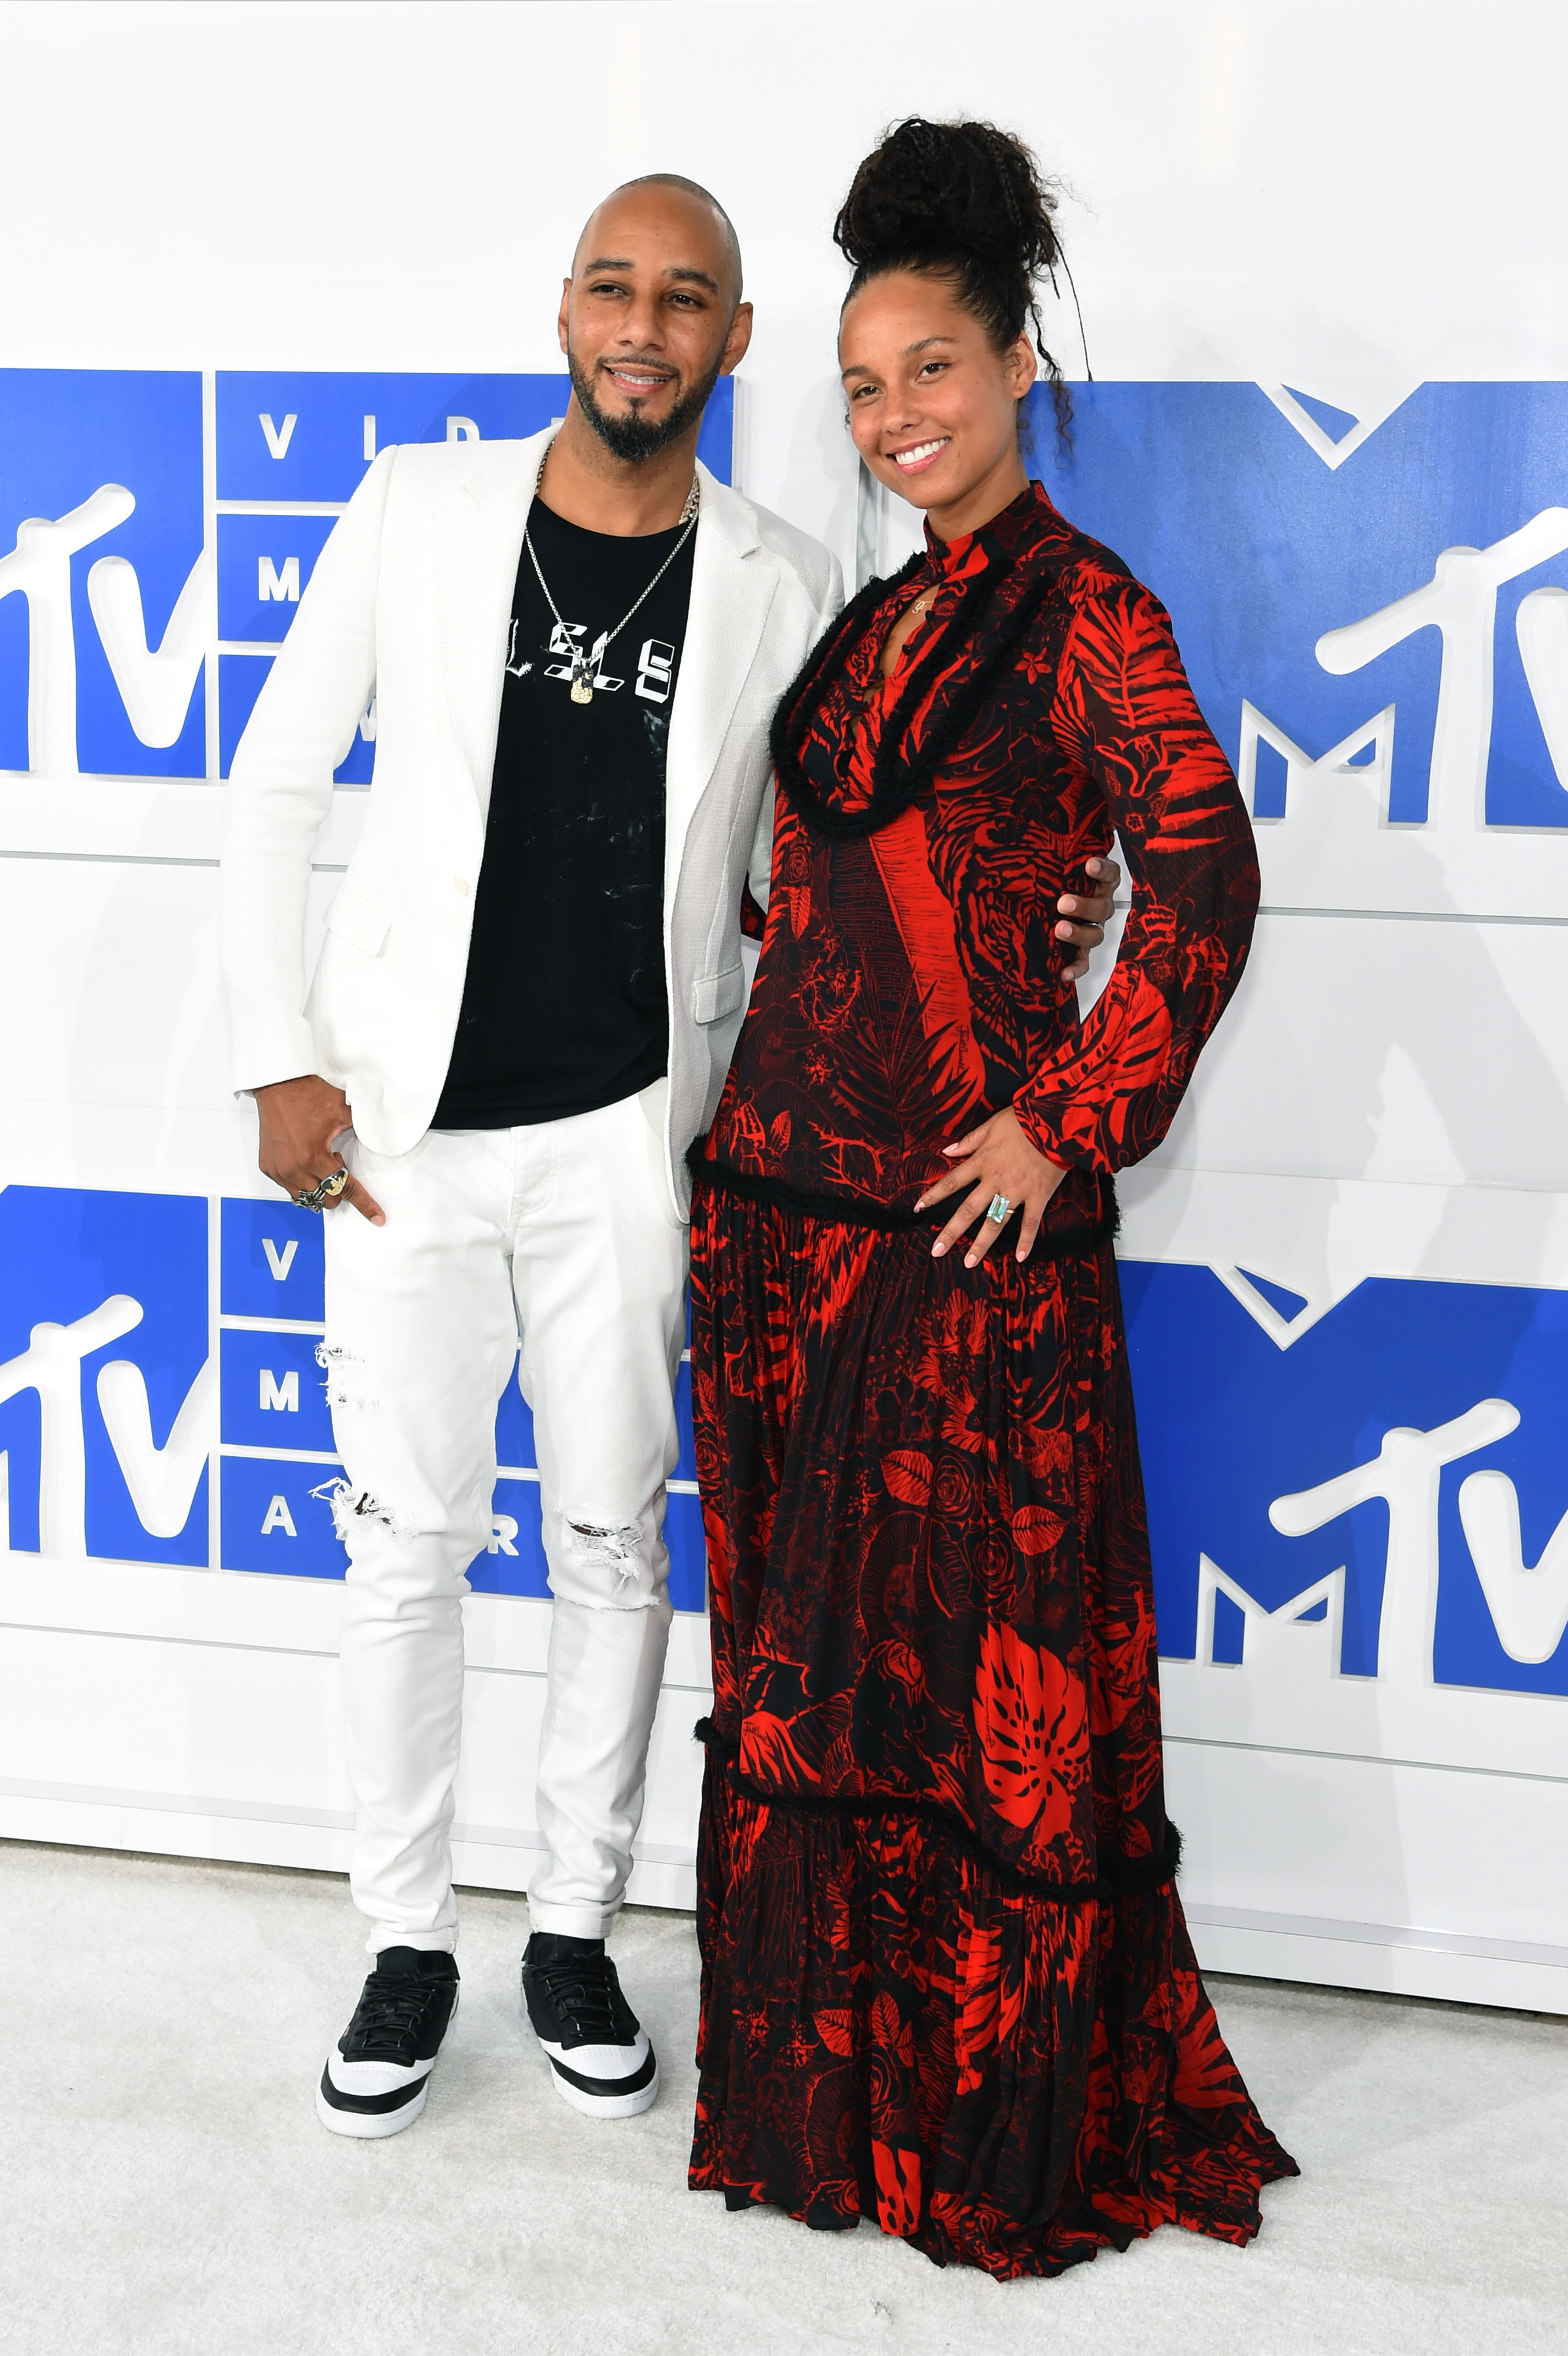 Alicia Keys Swizz Beatz VMAs 2016